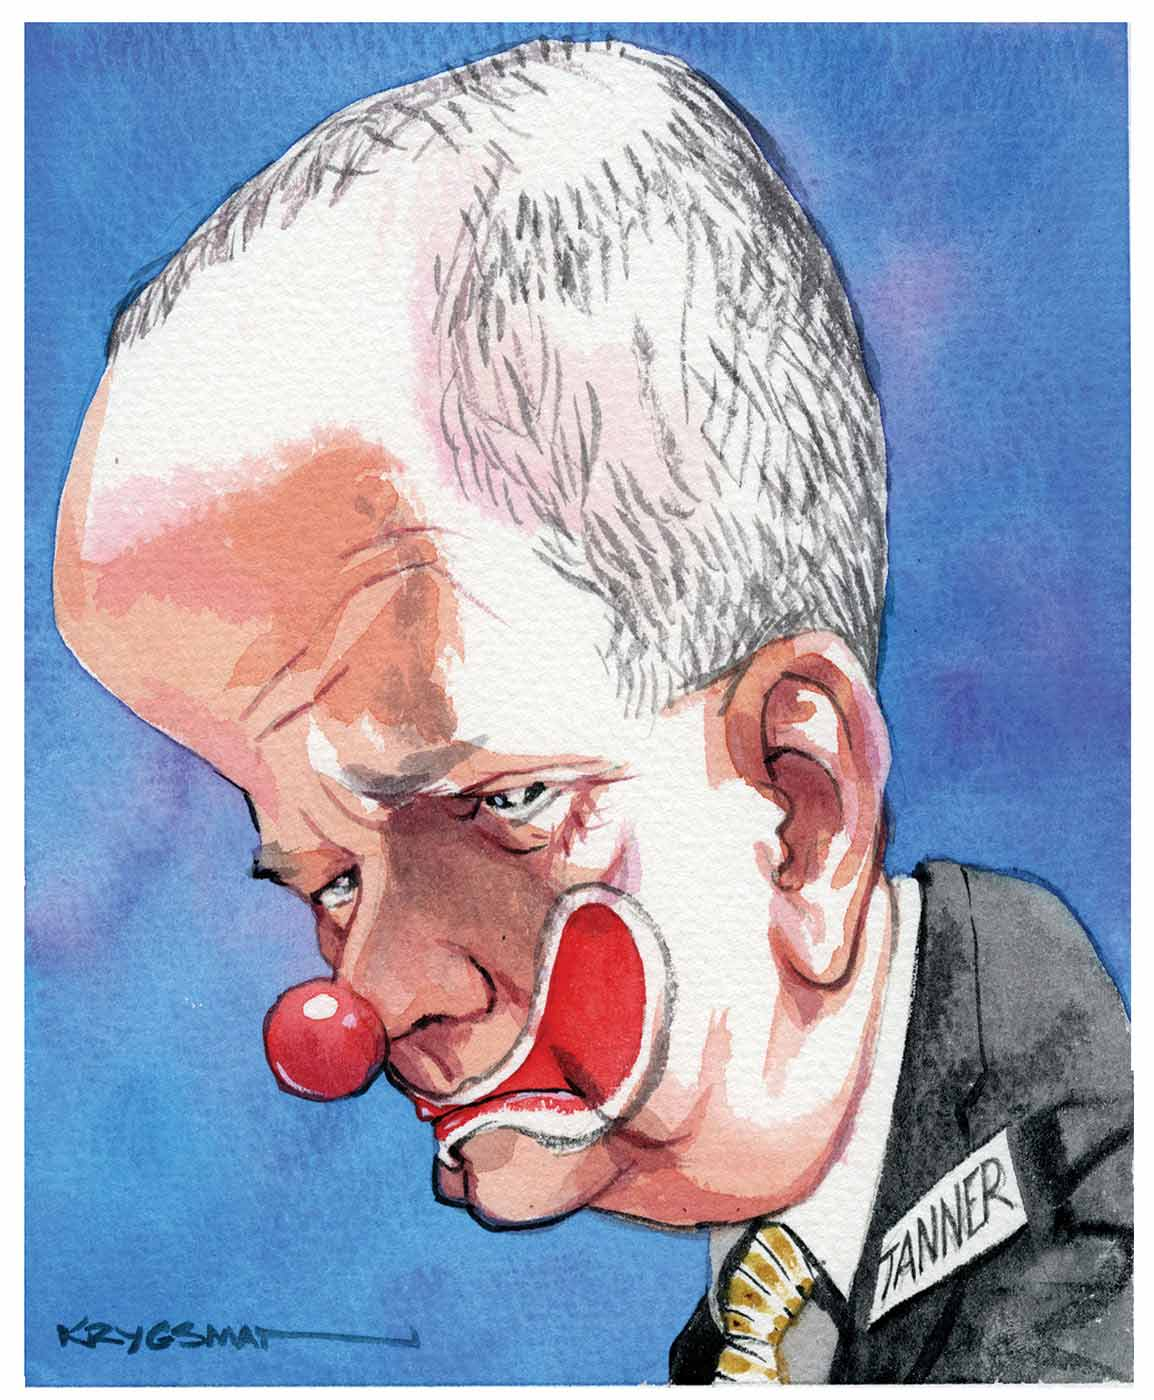 A colour caricature of Lindsay Tanner. He is depicted facing to the left of the image. He wears a suit, light coloured shirt and gold striped tie. His head is very large in relation to his body. He has a clown's mouth painted over his own and a clown's red nose stuck on the end of his nose. His expression is one of weariness; his head is tilted down toward the left of the image to reinforce his expression. A white card with the word 'Tanner' on it can be seen on the left lapel of his jacket. The background of the image is blue. - click to view larger image